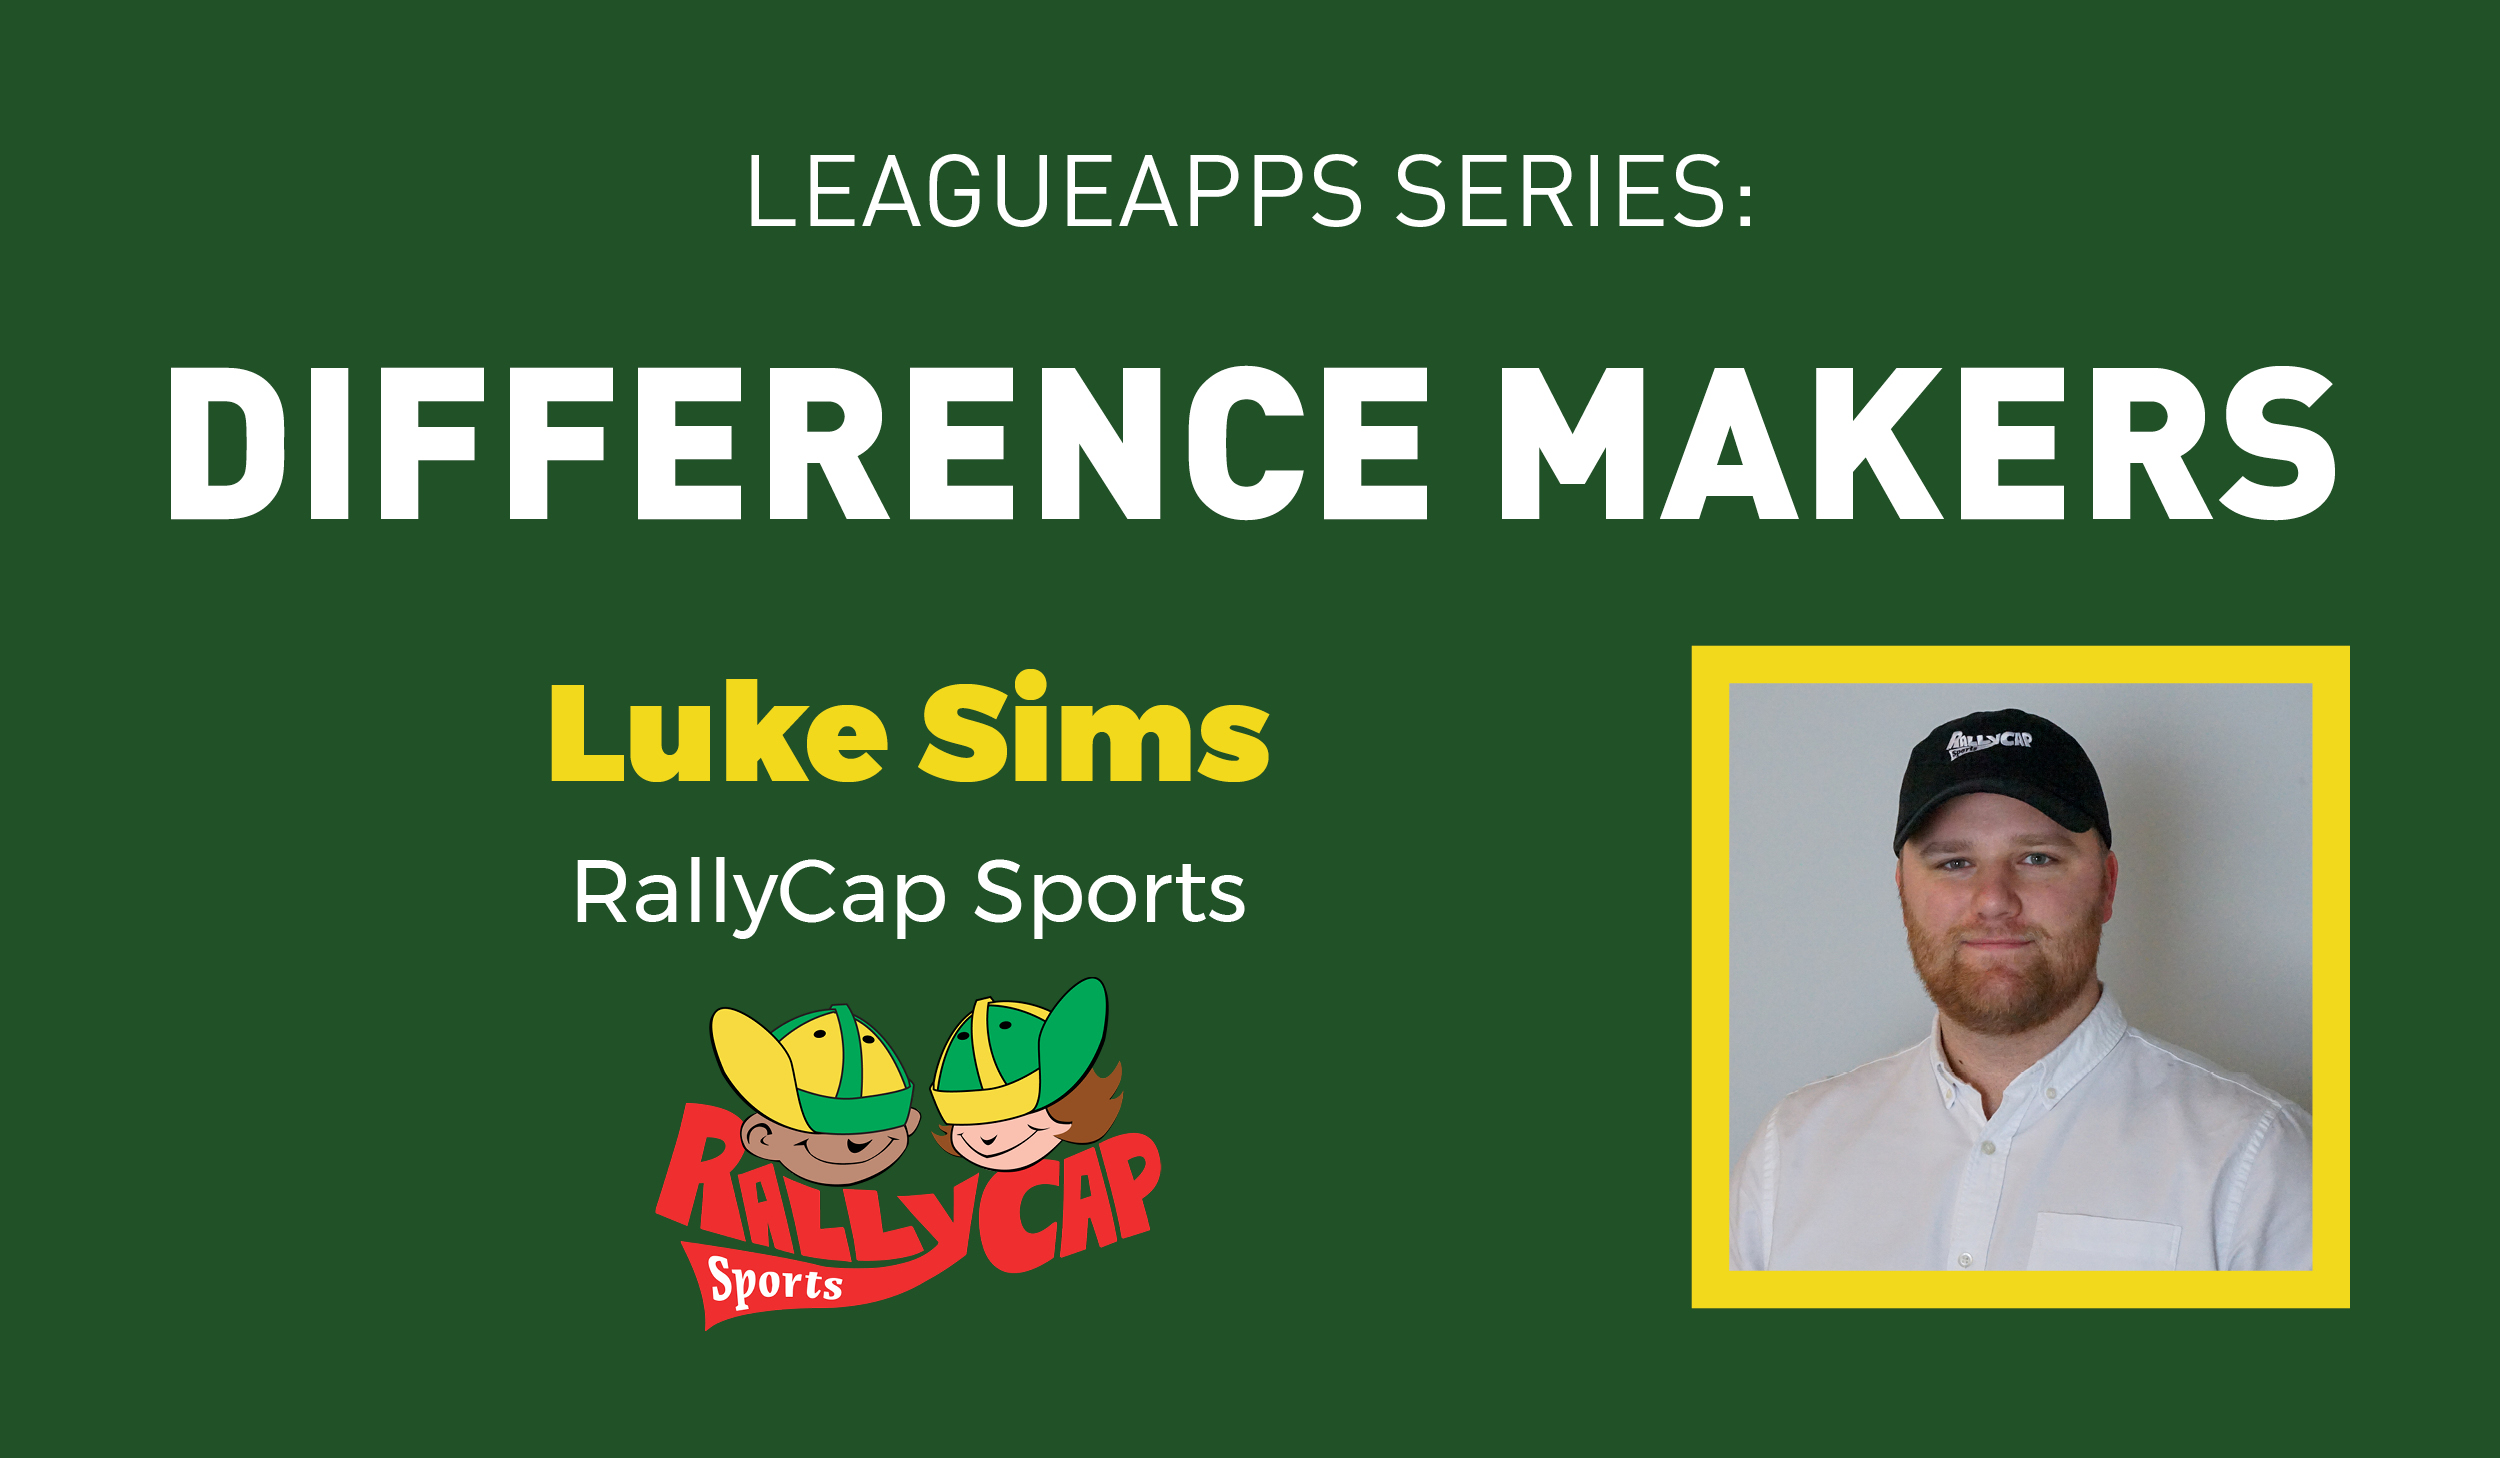 Difference Makers - RallyCap